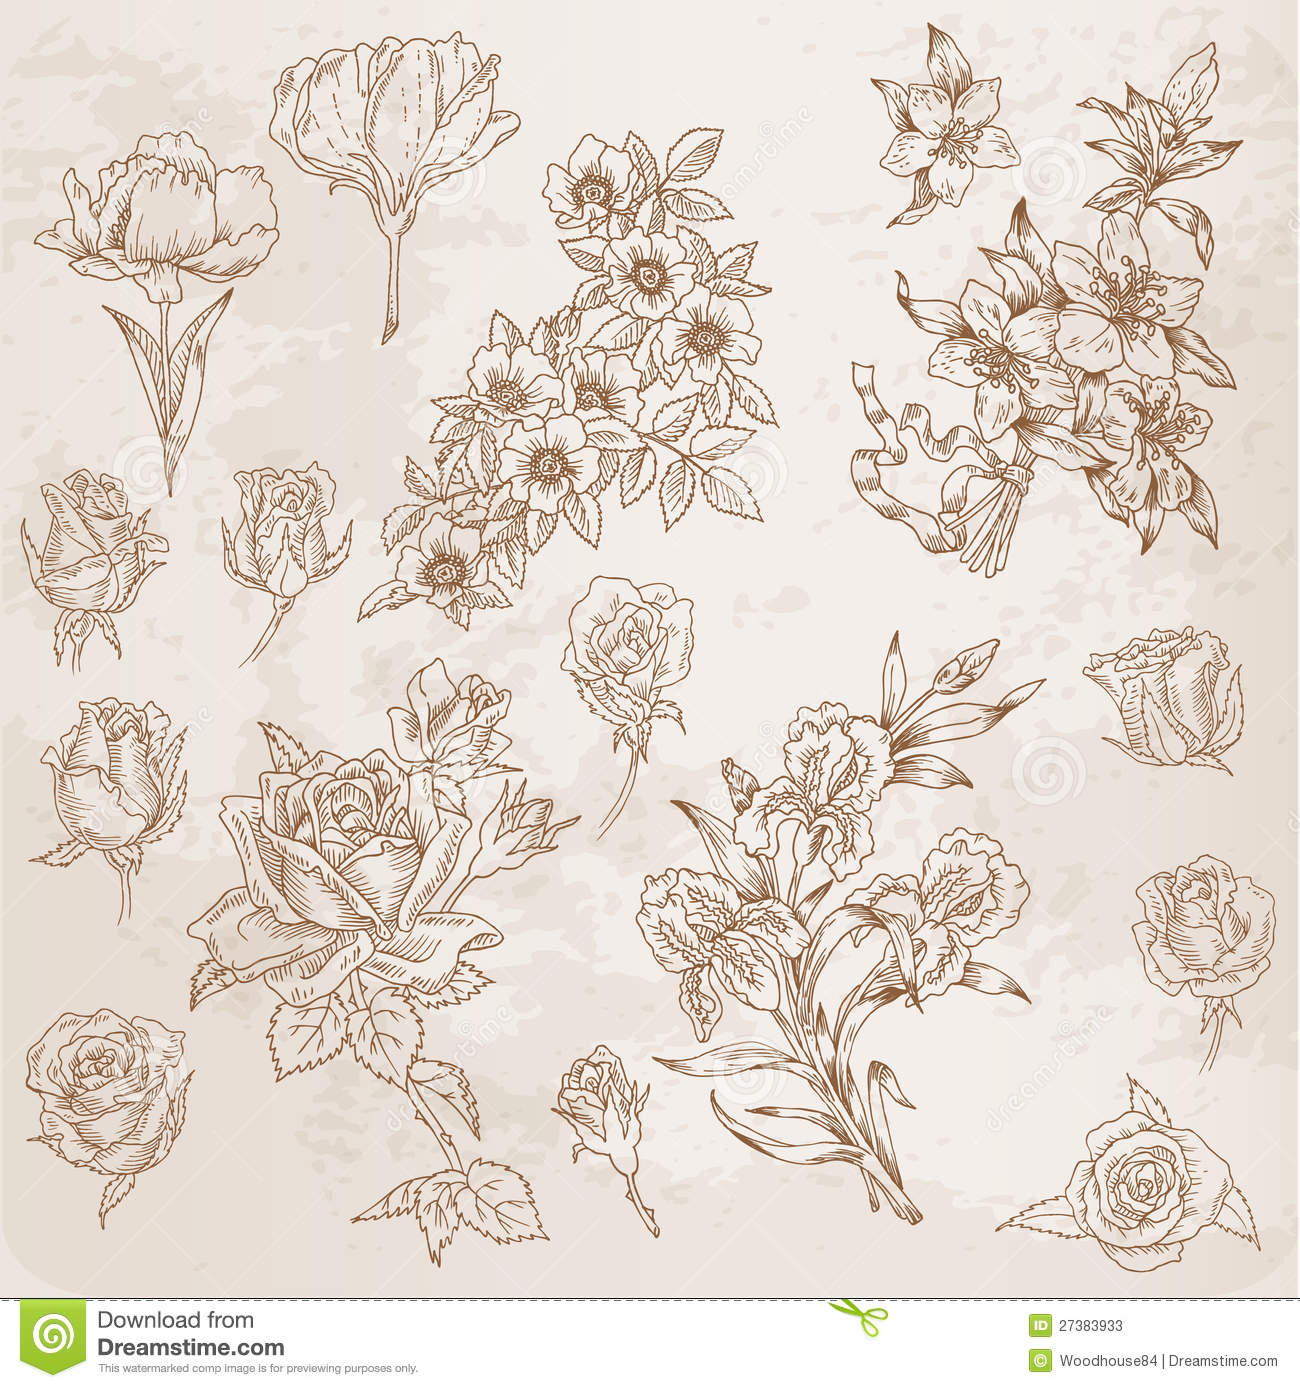 Detailed Hand Drawn Flowers Stock Vector - Image: 27383933